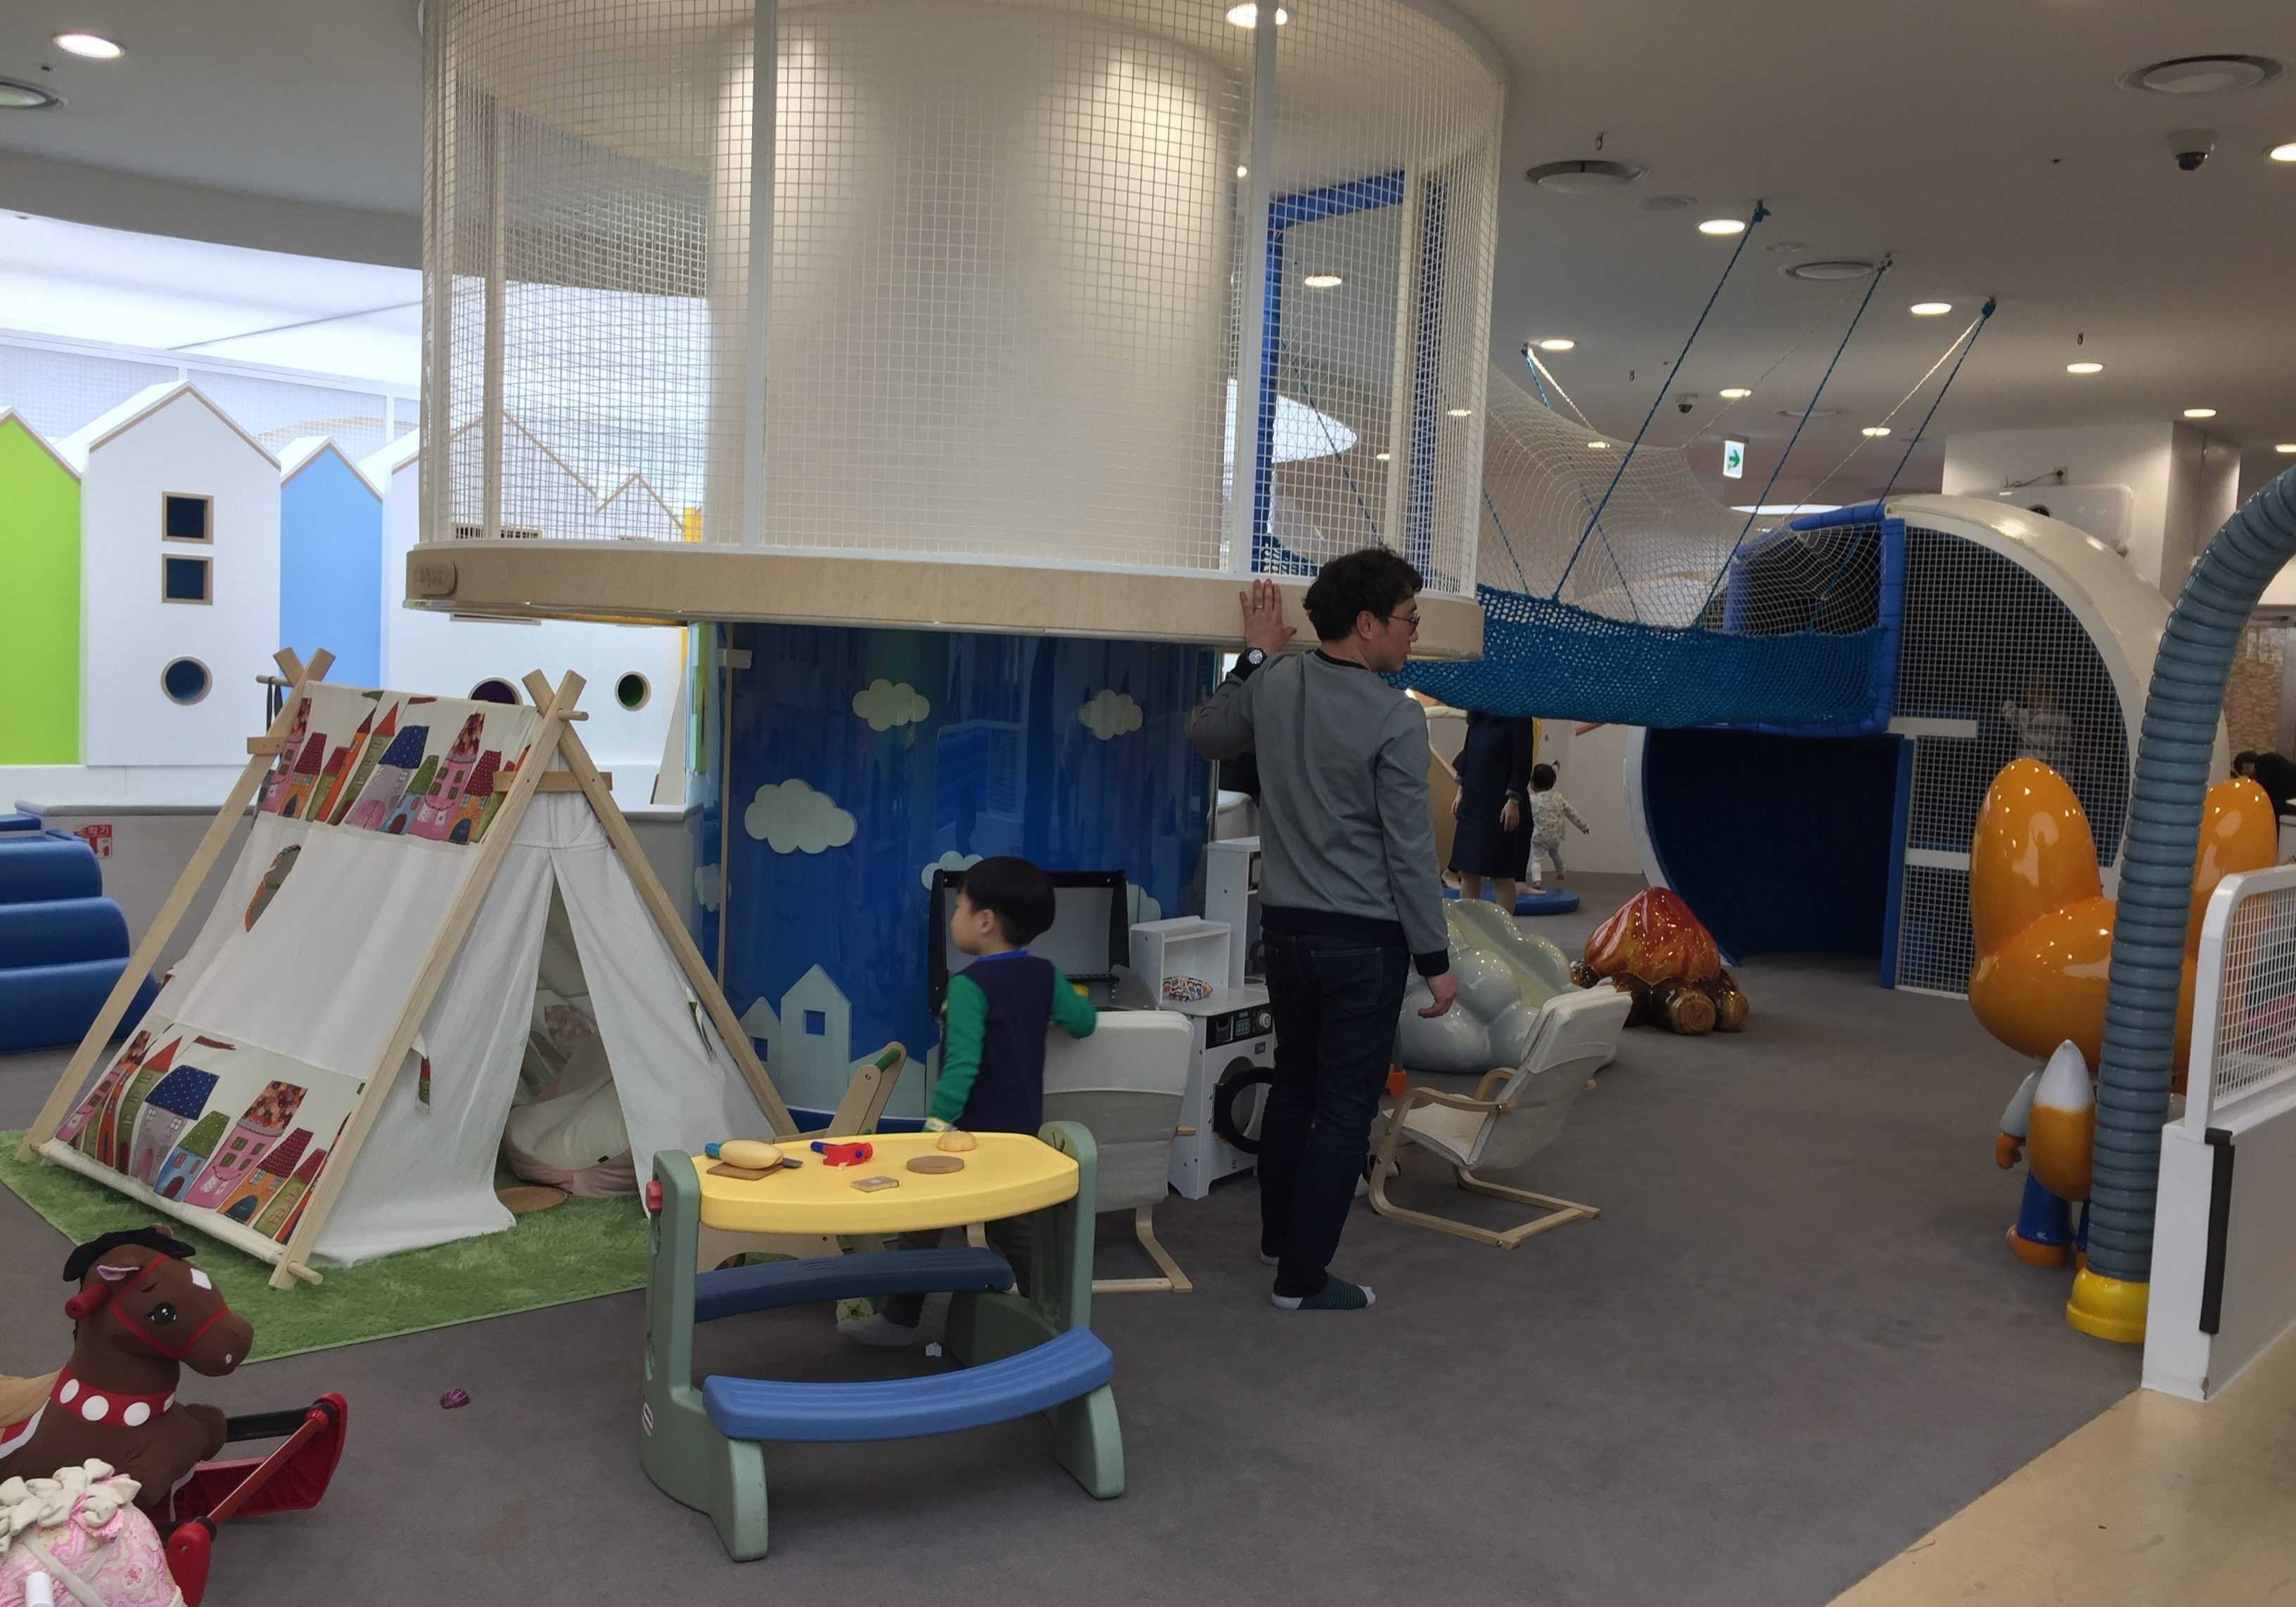 Middle section of Pororo Lounge, Coex, Seoul